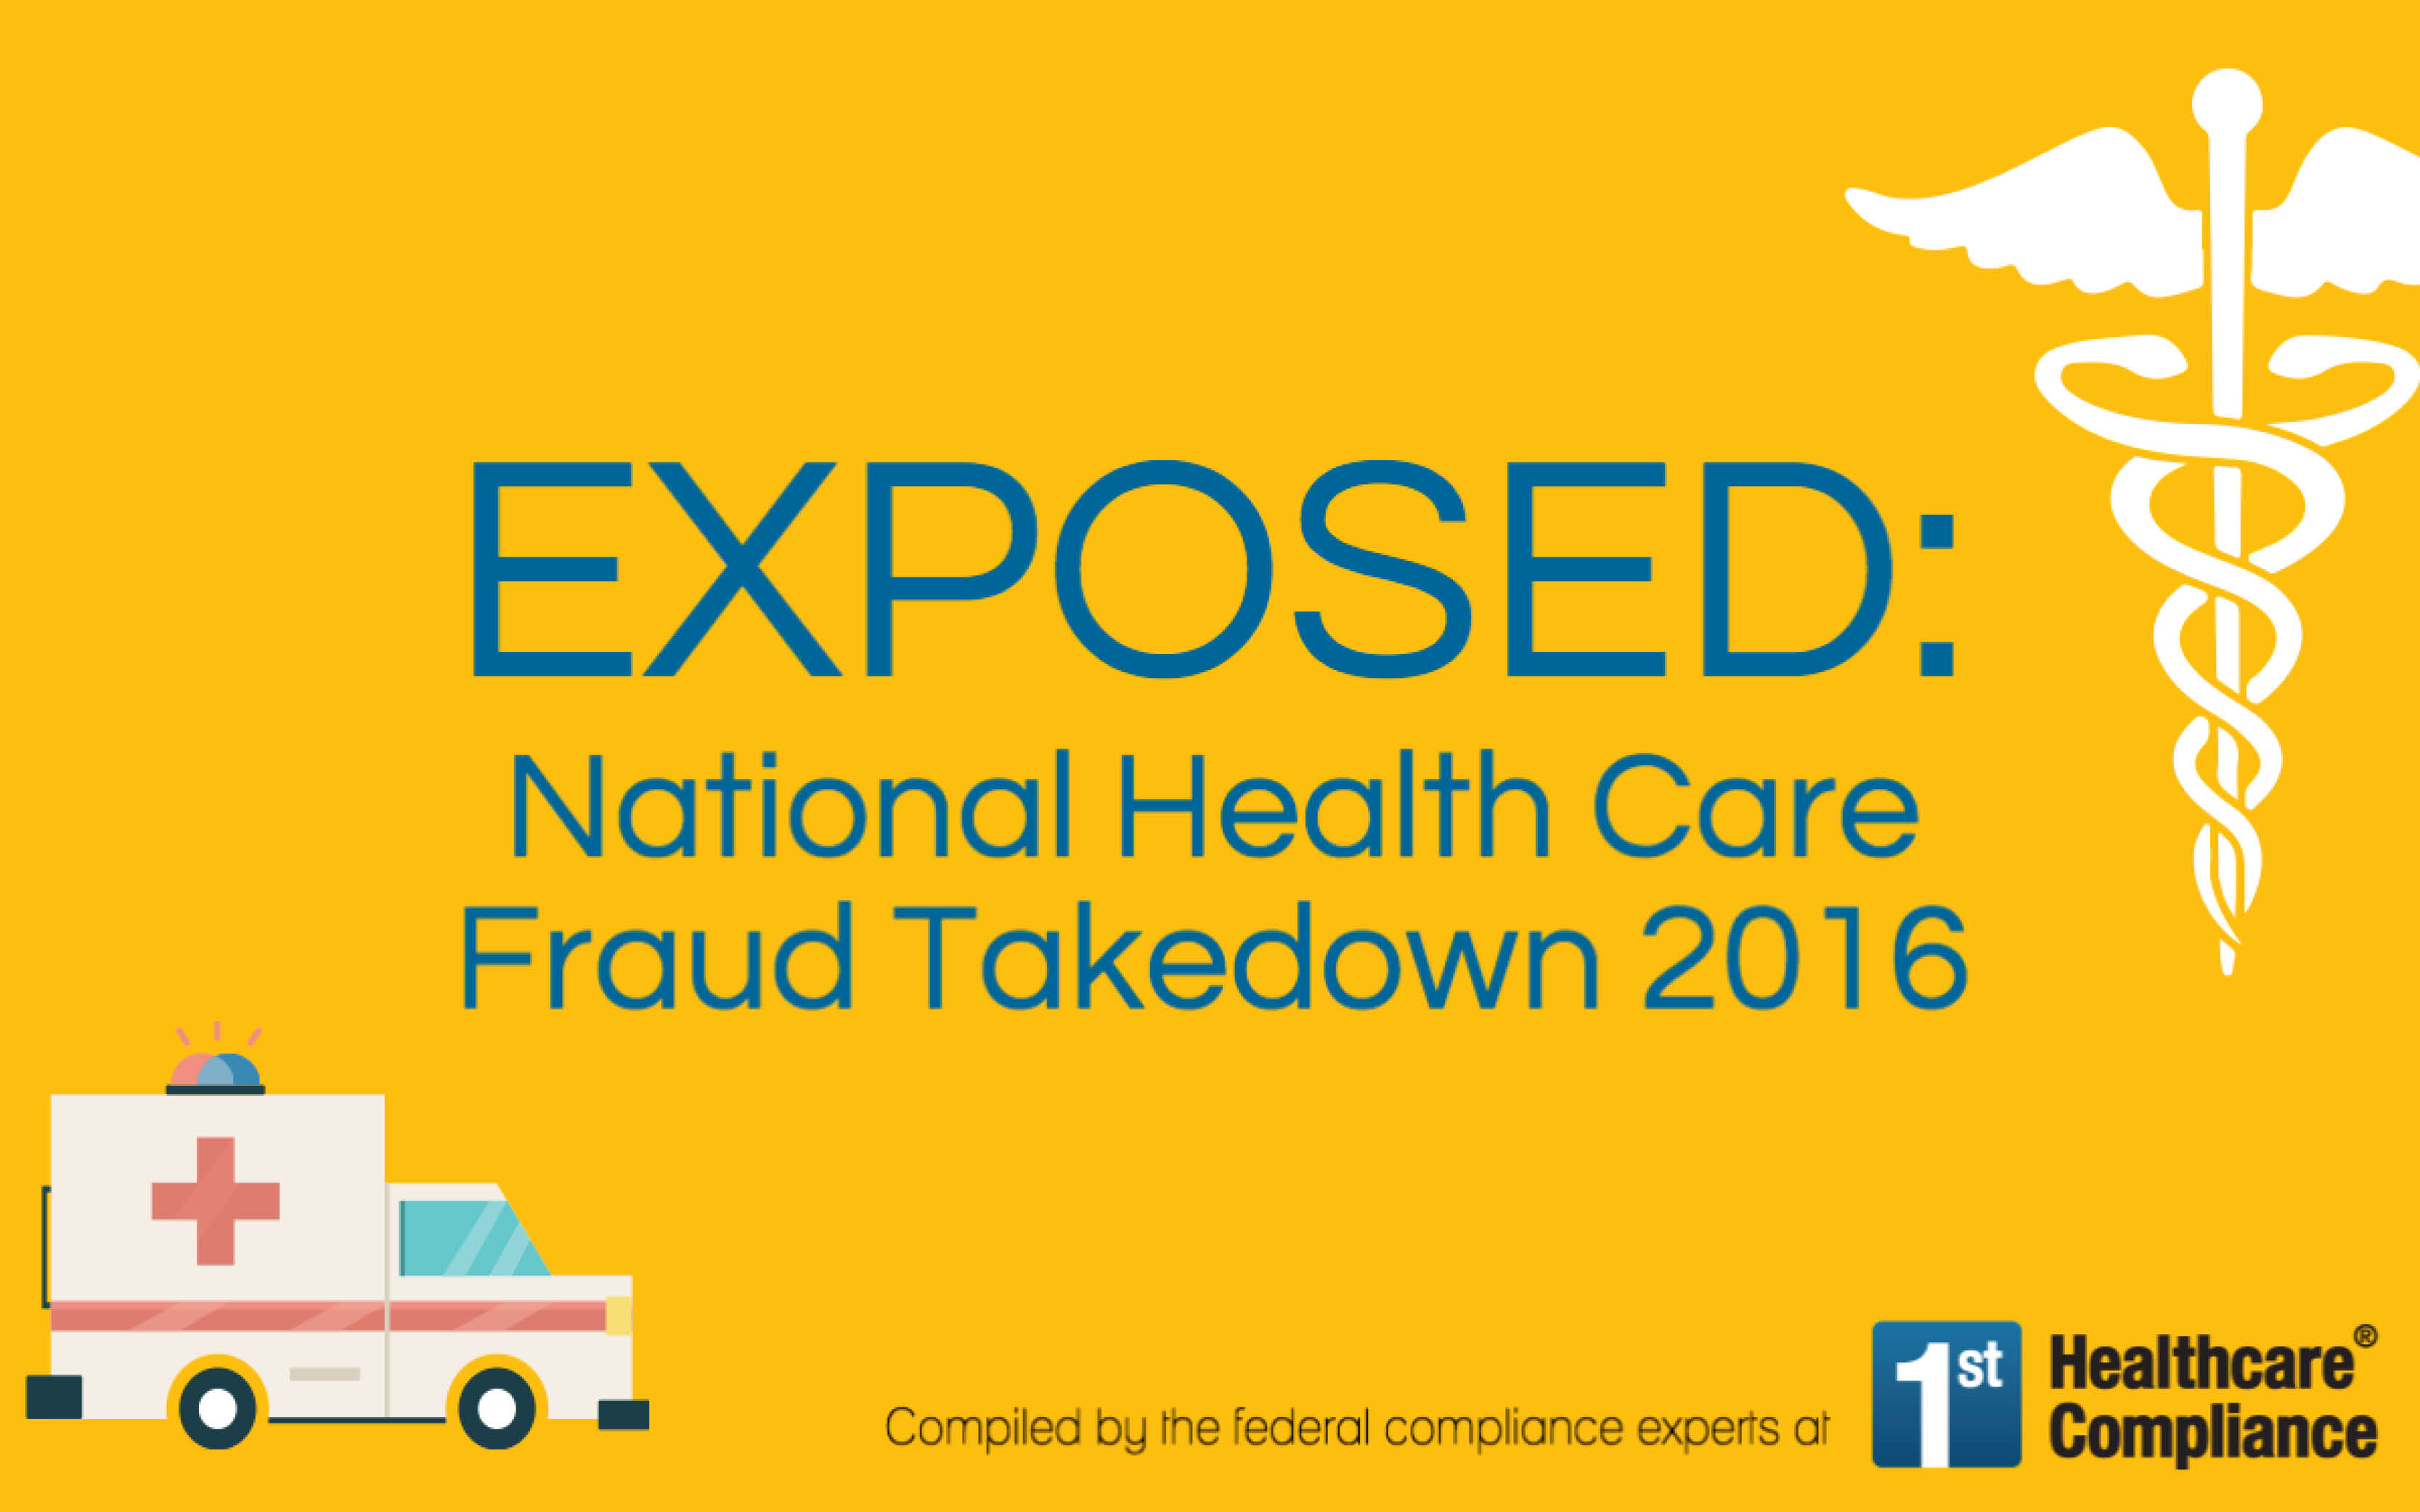 Exposed: National Health Care Fraud Takedown 2016